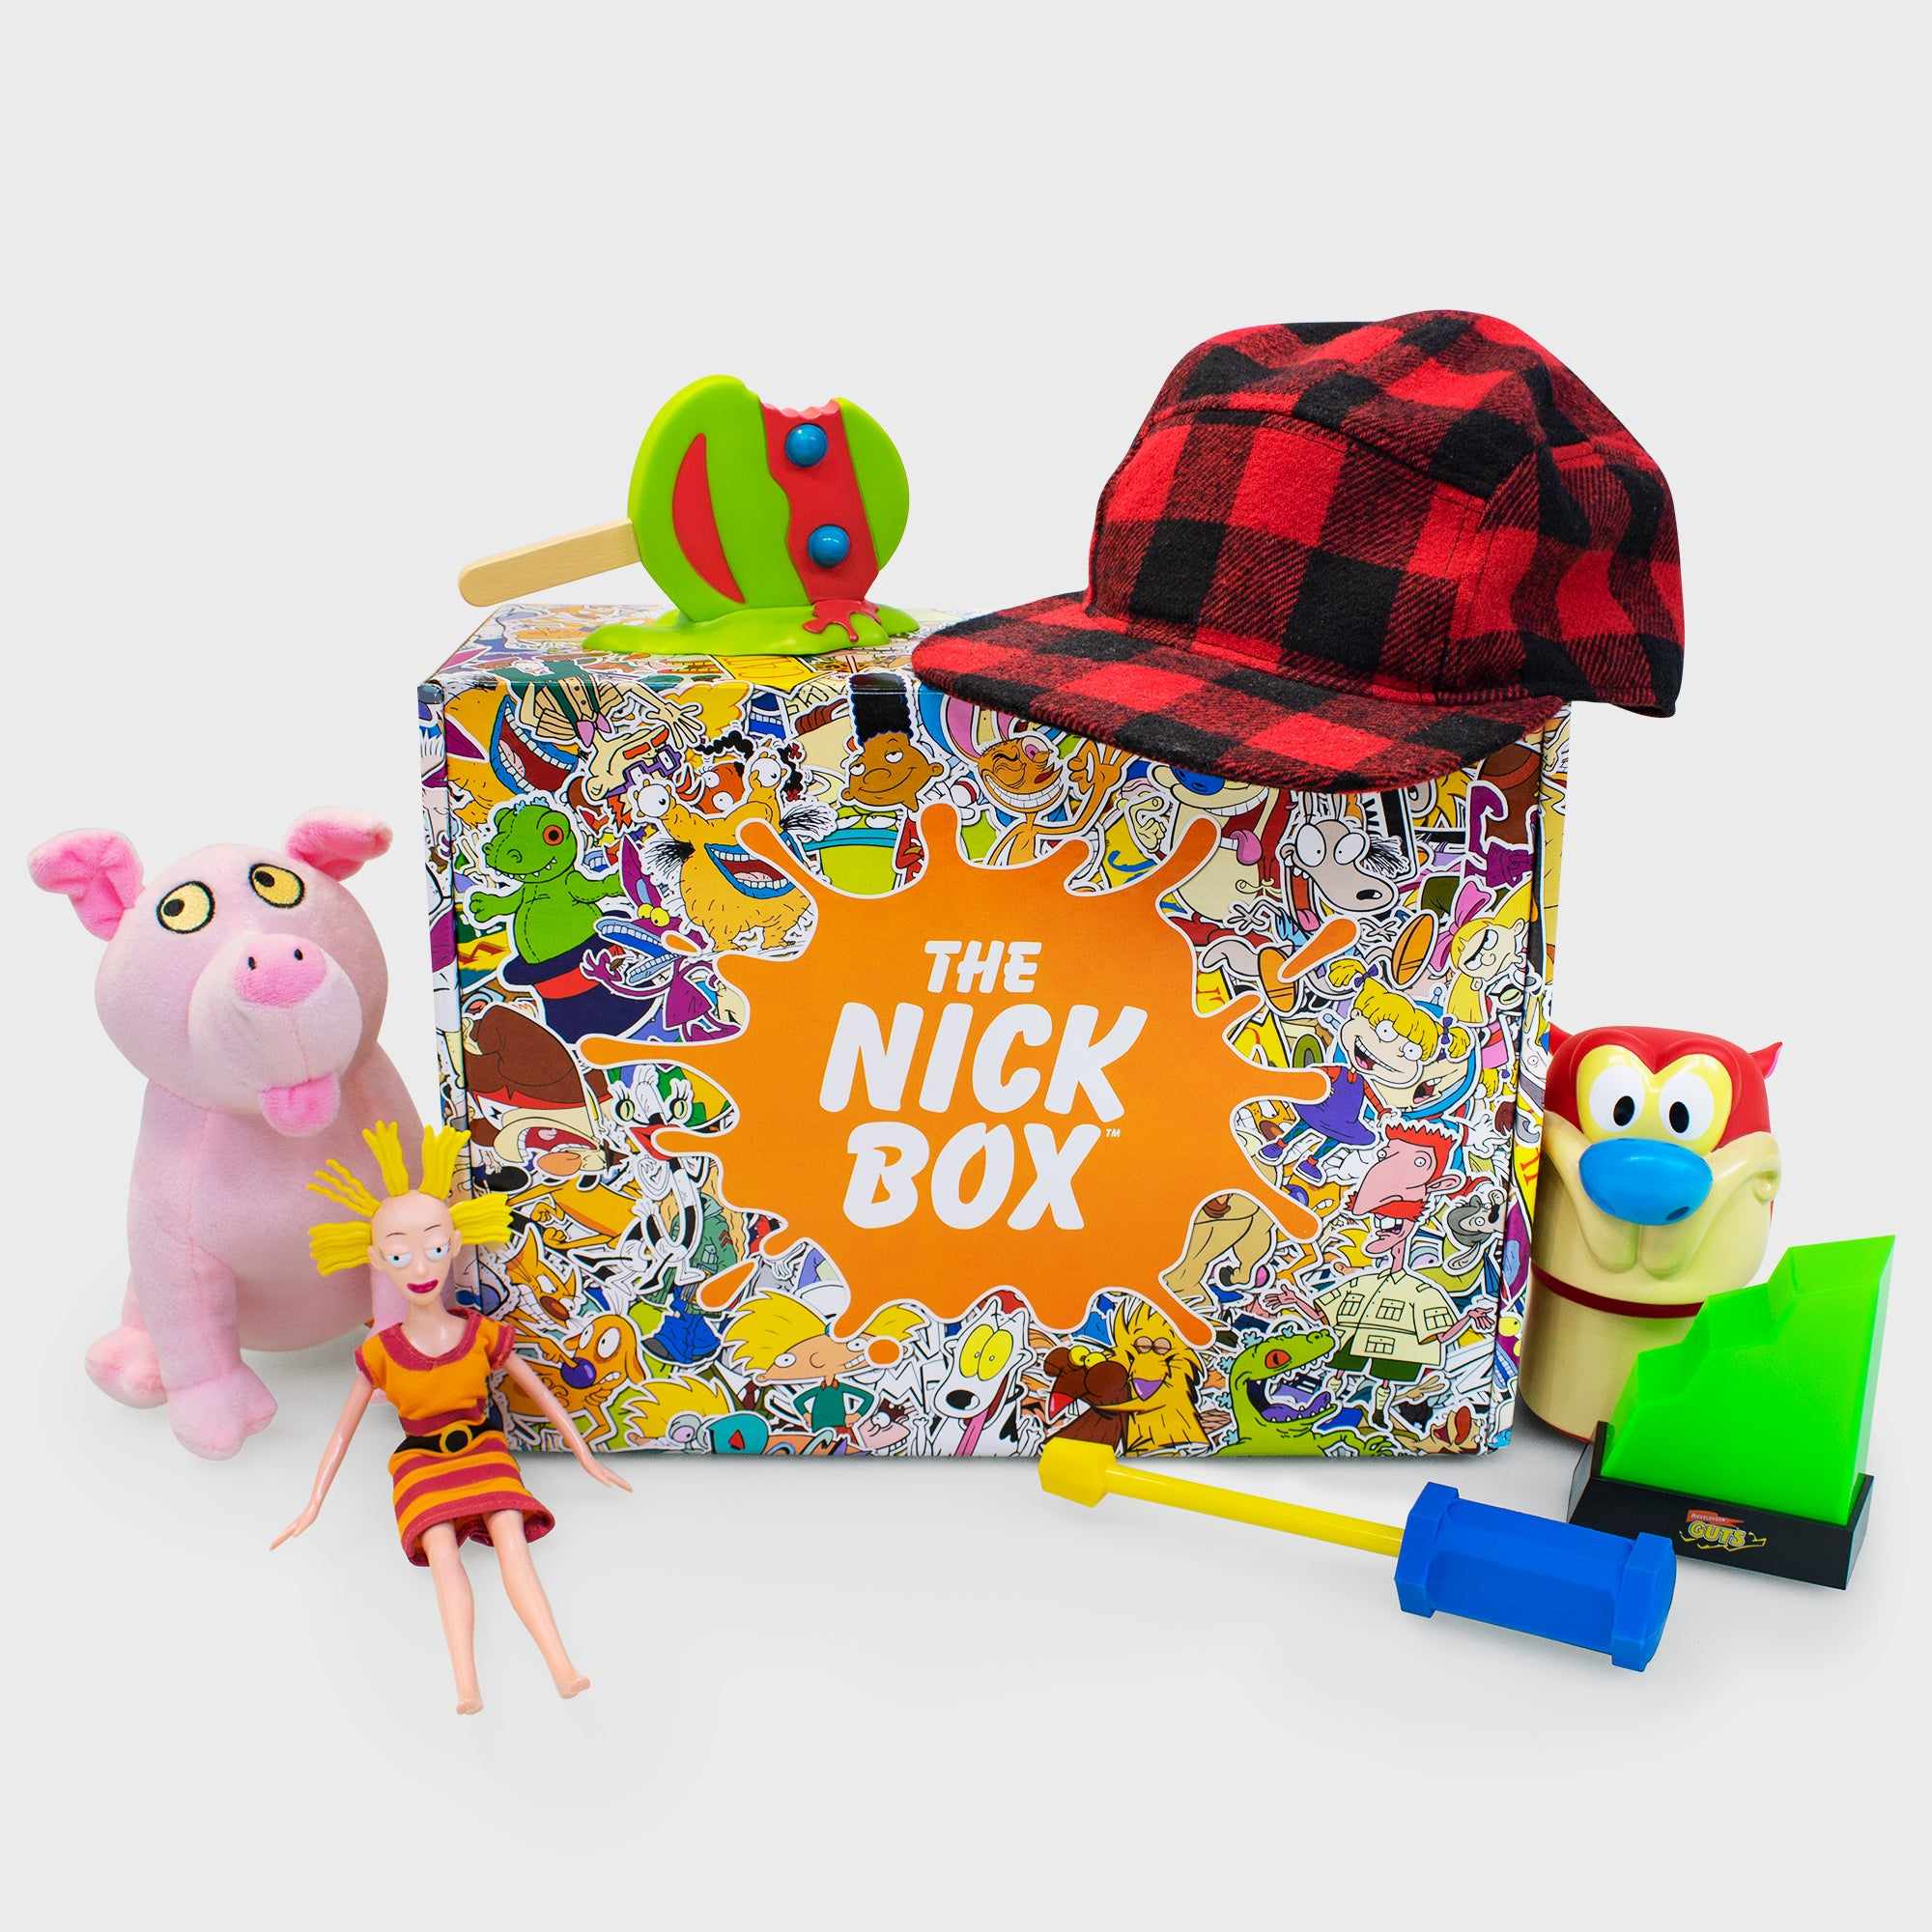 the nick box nickelodeon 90s kids 90s cartoons nostalgia throwback nostalgic classic subscription quarterly exclusive limited edition collectible reptar rugrats ren and stimpy rocko's modern life hey arnold are you afraid of the dark good burger all that culturefly